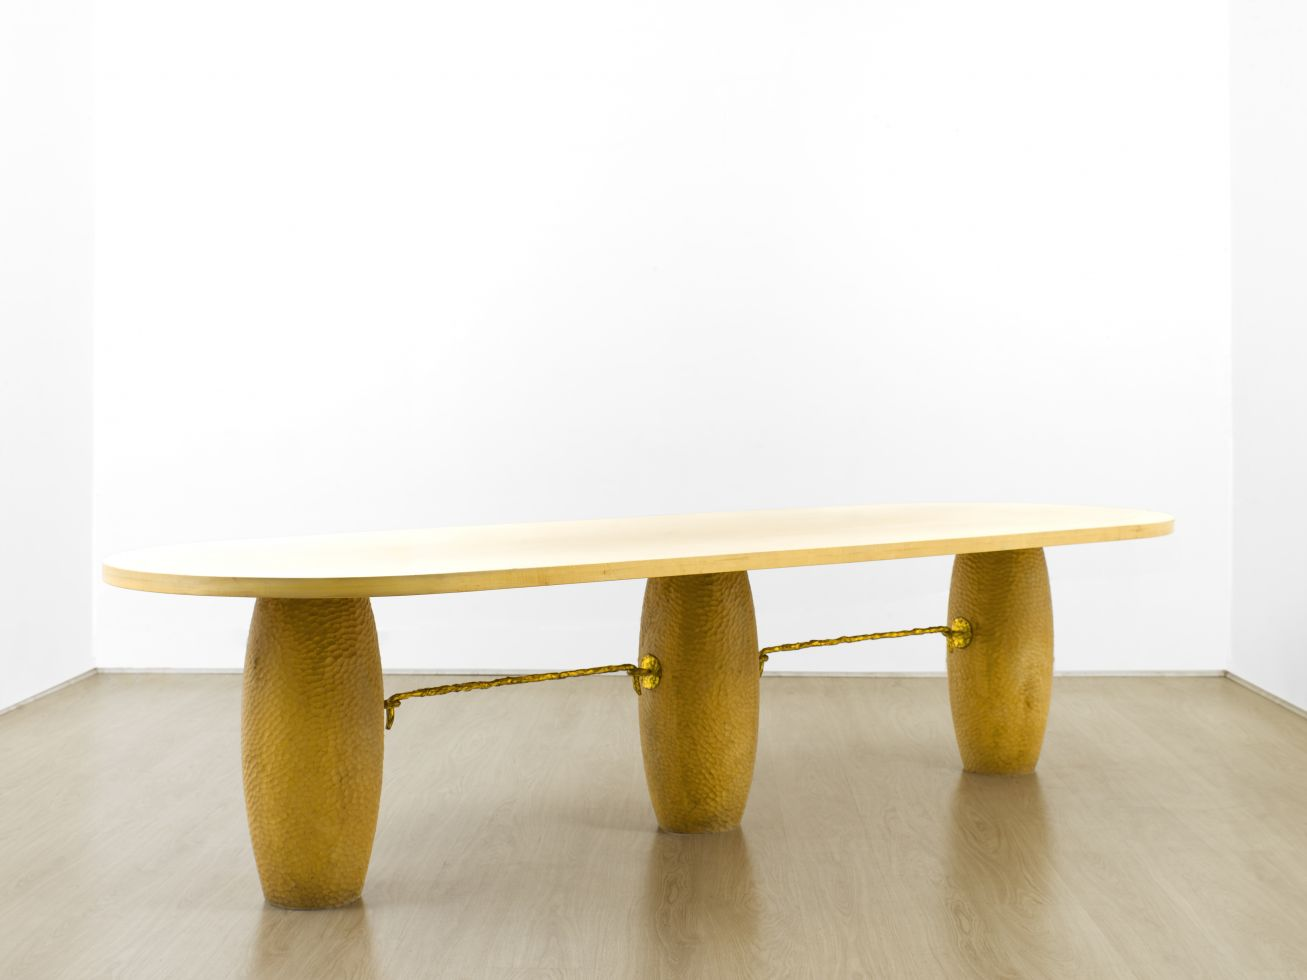 Garouste & Bonetti, table